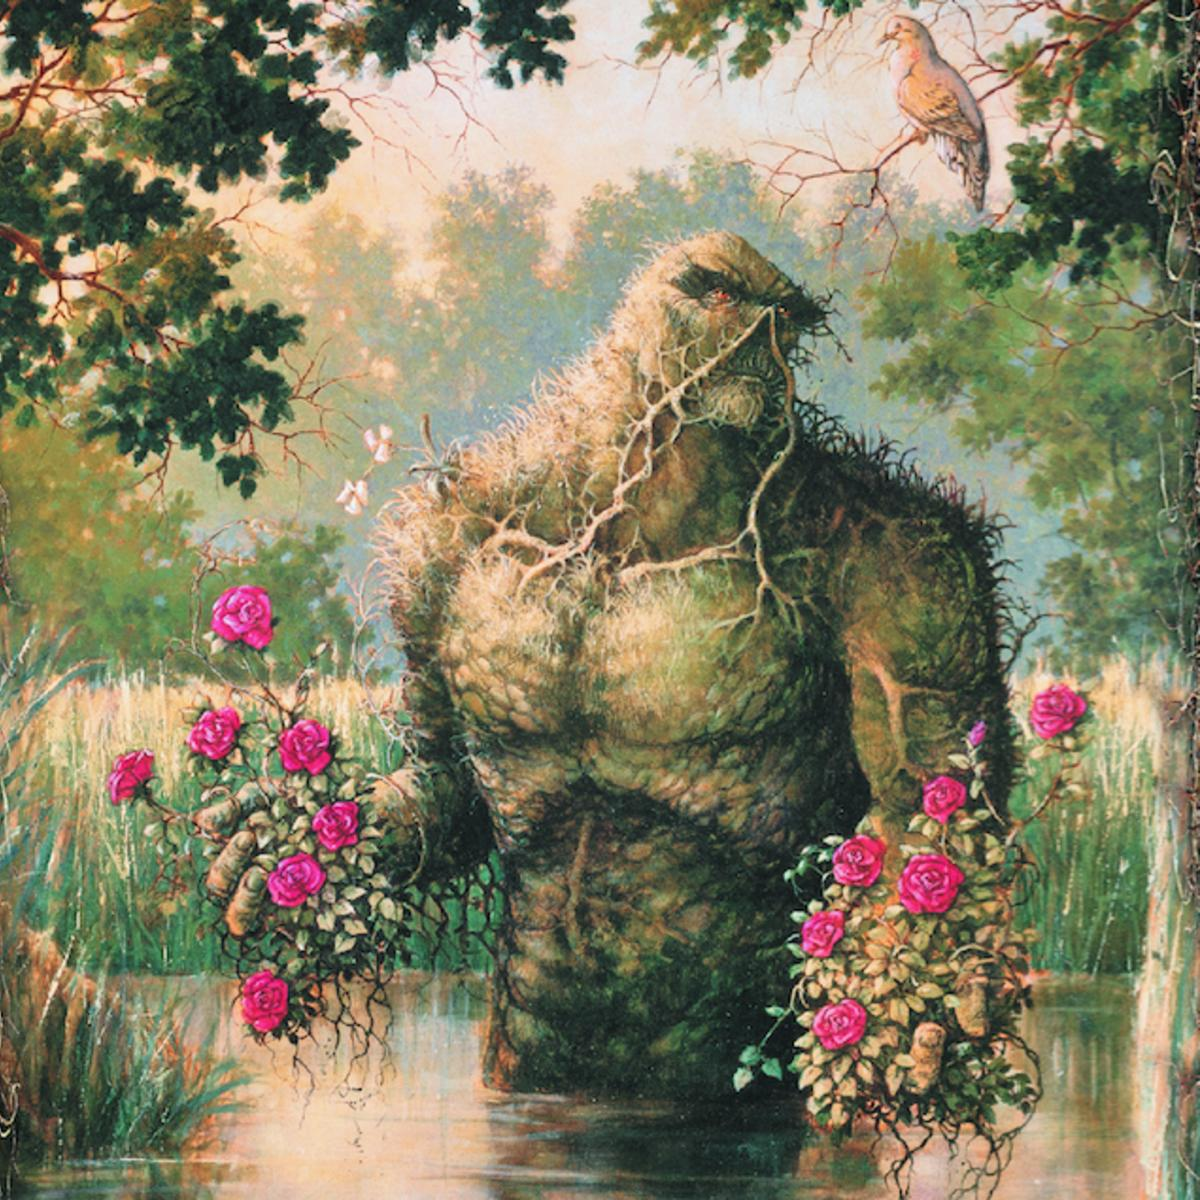 Swampthing_rosehands